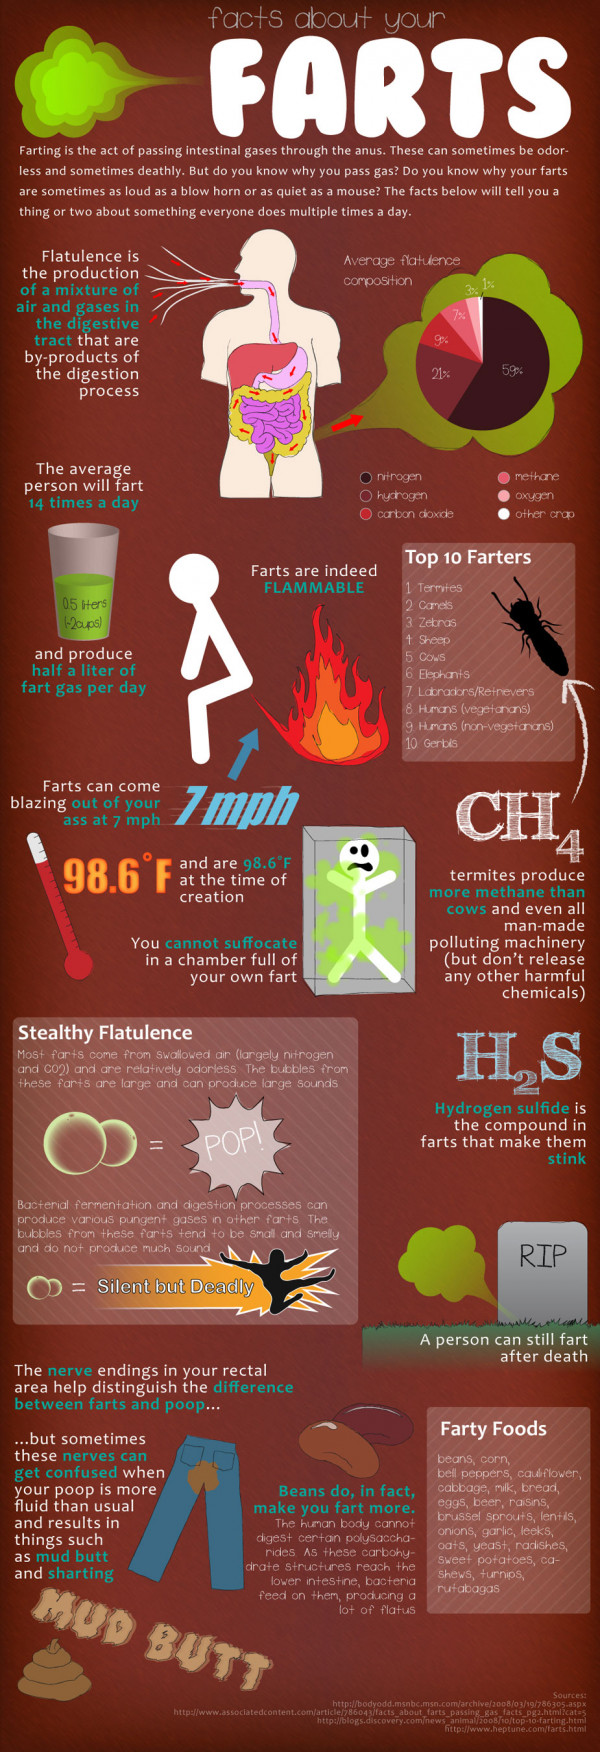 Facts About Your Farts Infographic | RobynsOnlineWorld.com